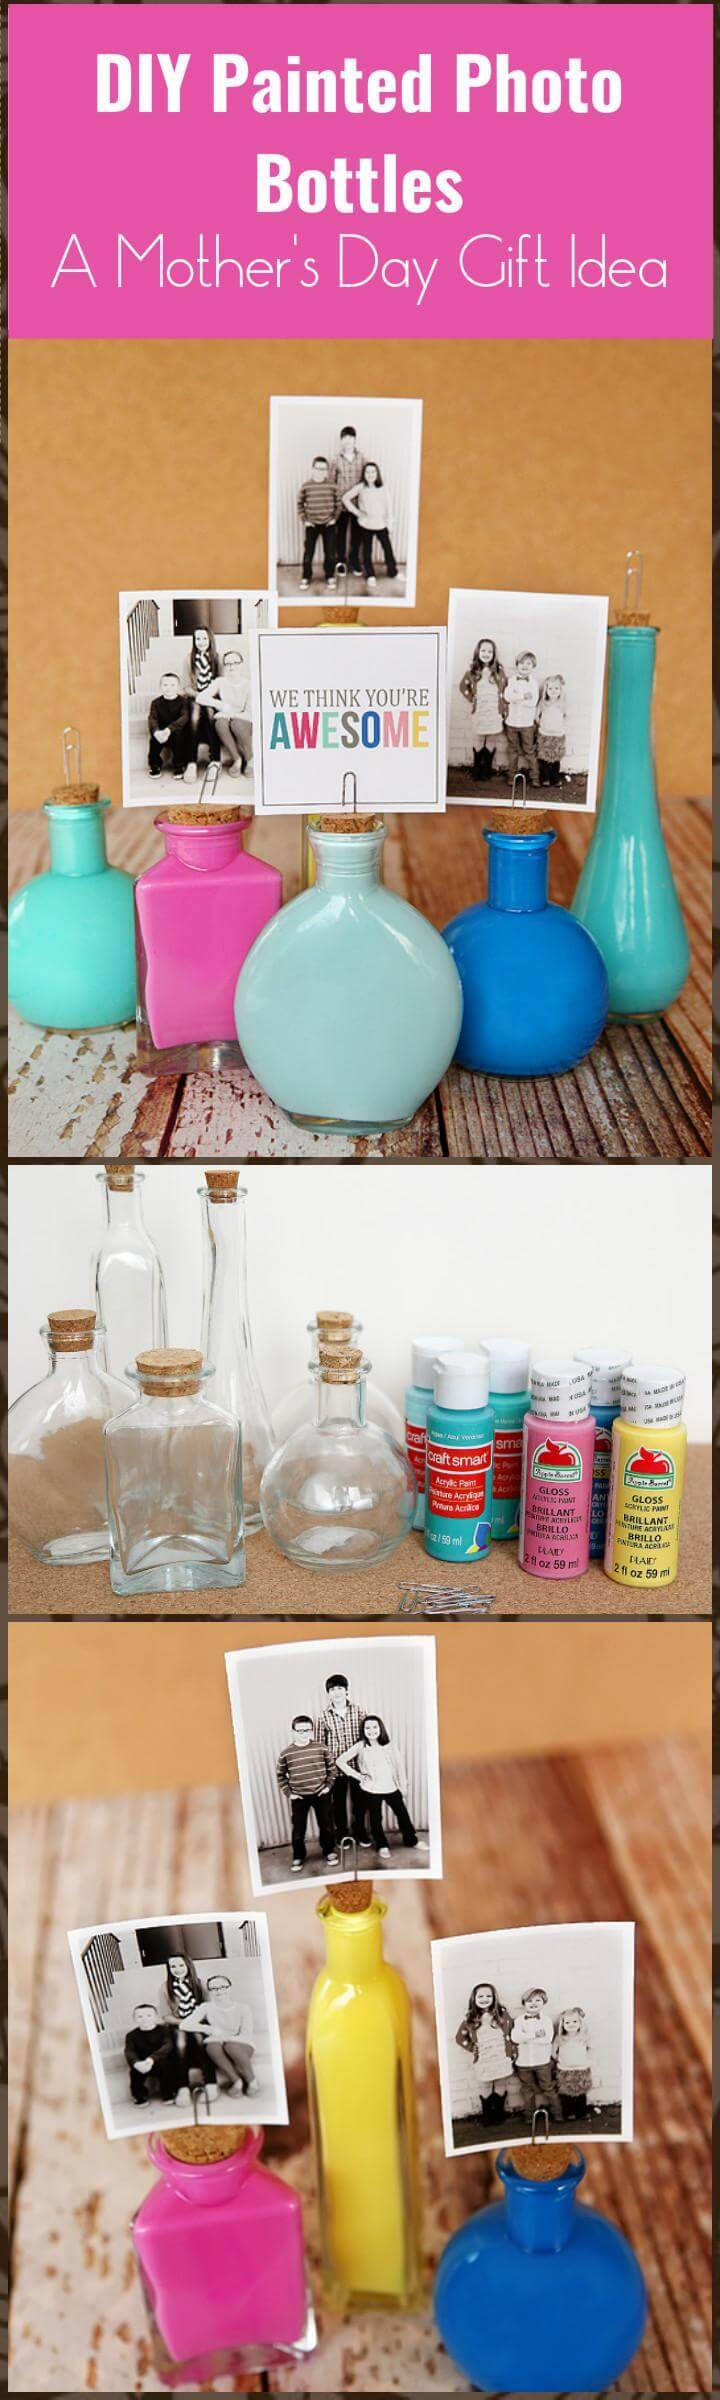 DIY painted photo bottles for Mother's Day